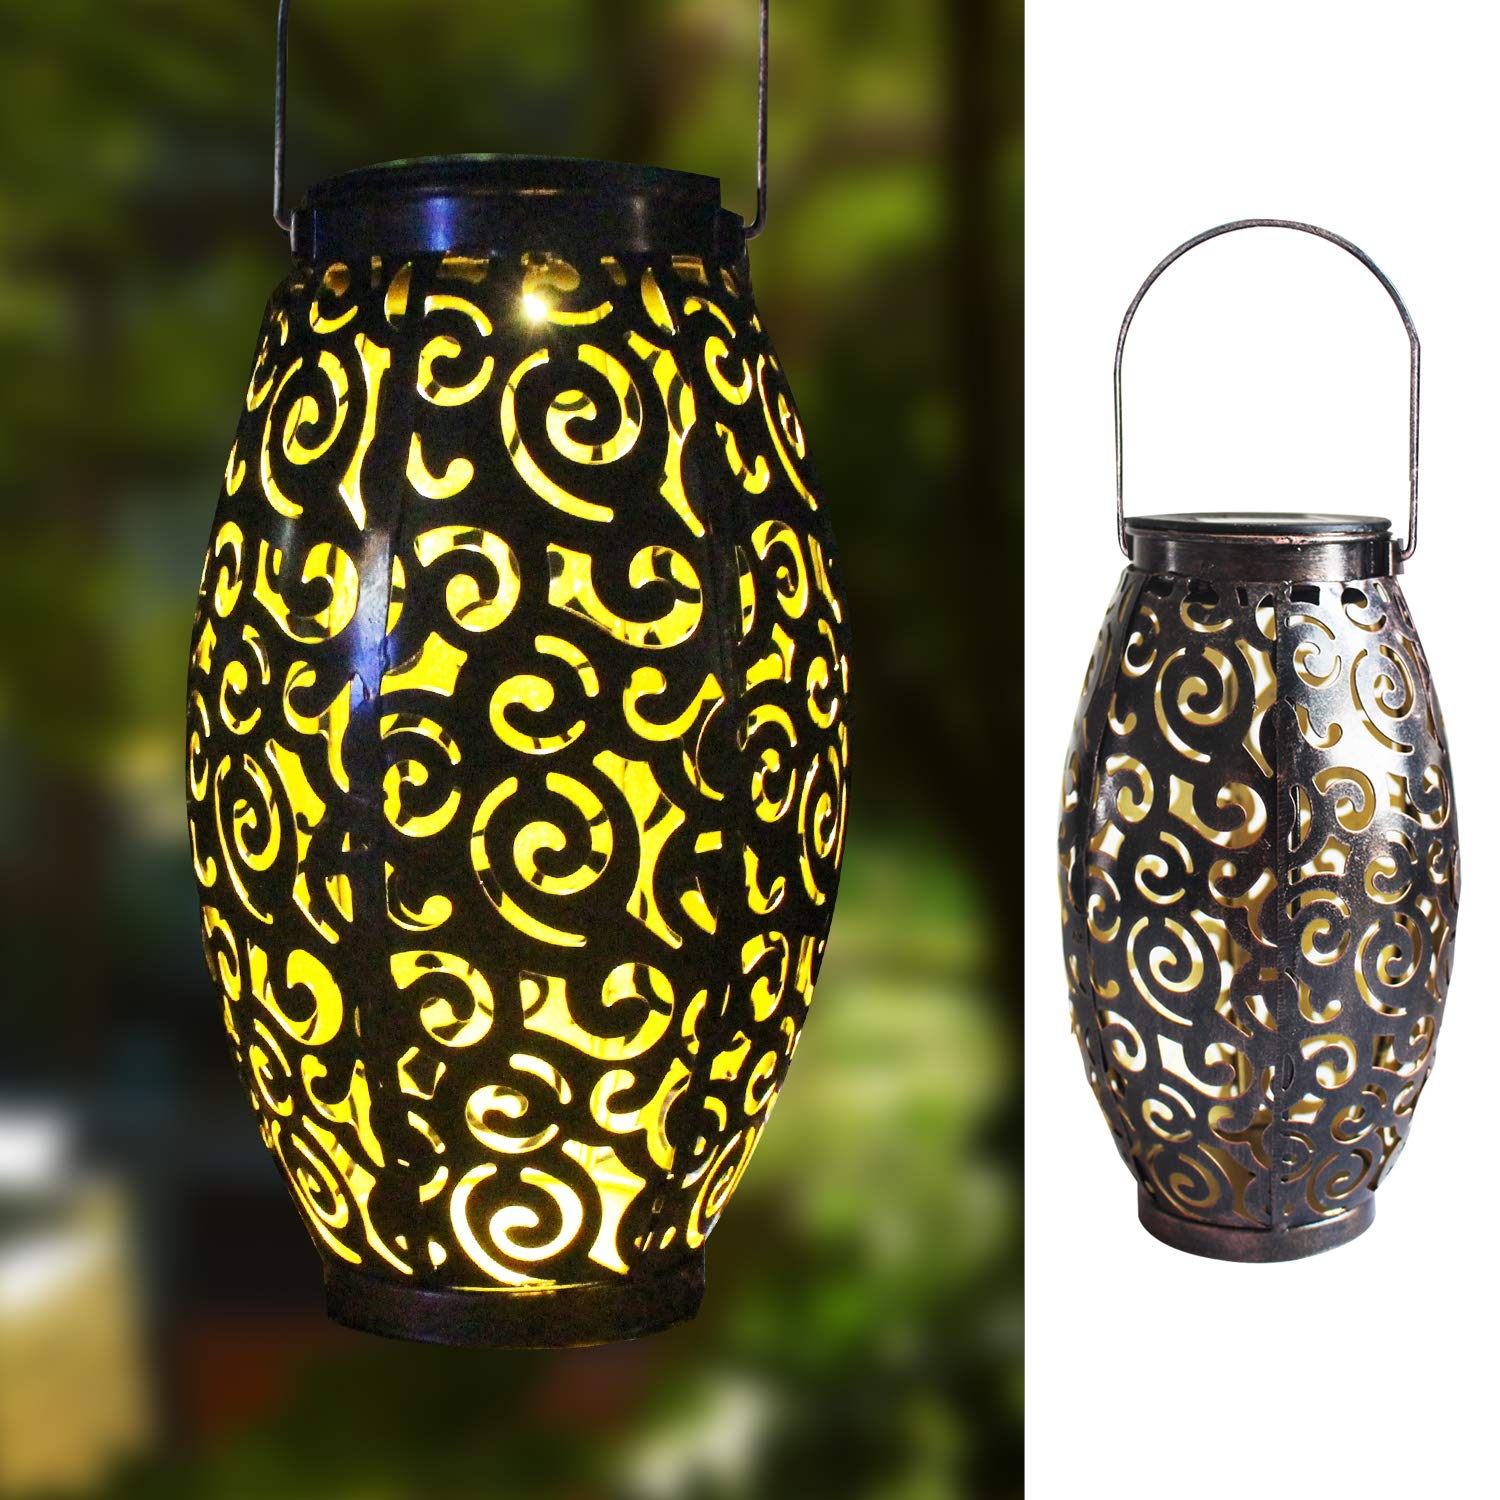 Hanging Solar Lights Outdoor Solar Lanterns Retro Hanging Solar Lantern Garden Outdoor Lights with Handle, Metal Waterproof LED Table Lamp Decorative for Porch Garden Patio Backyard Courtyard Pathway